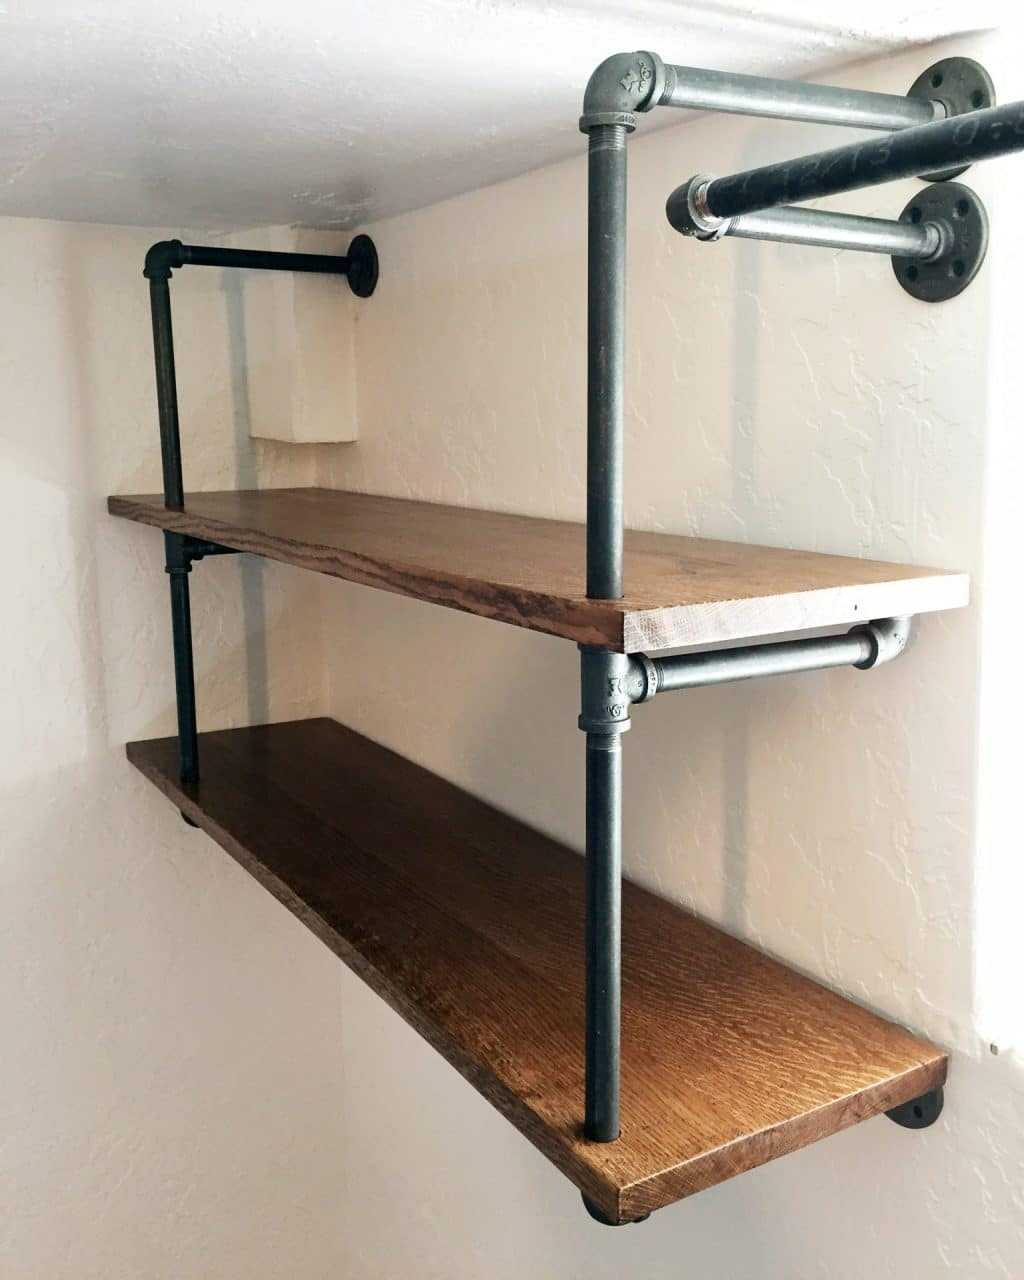 Clothes hanging rack with shelf